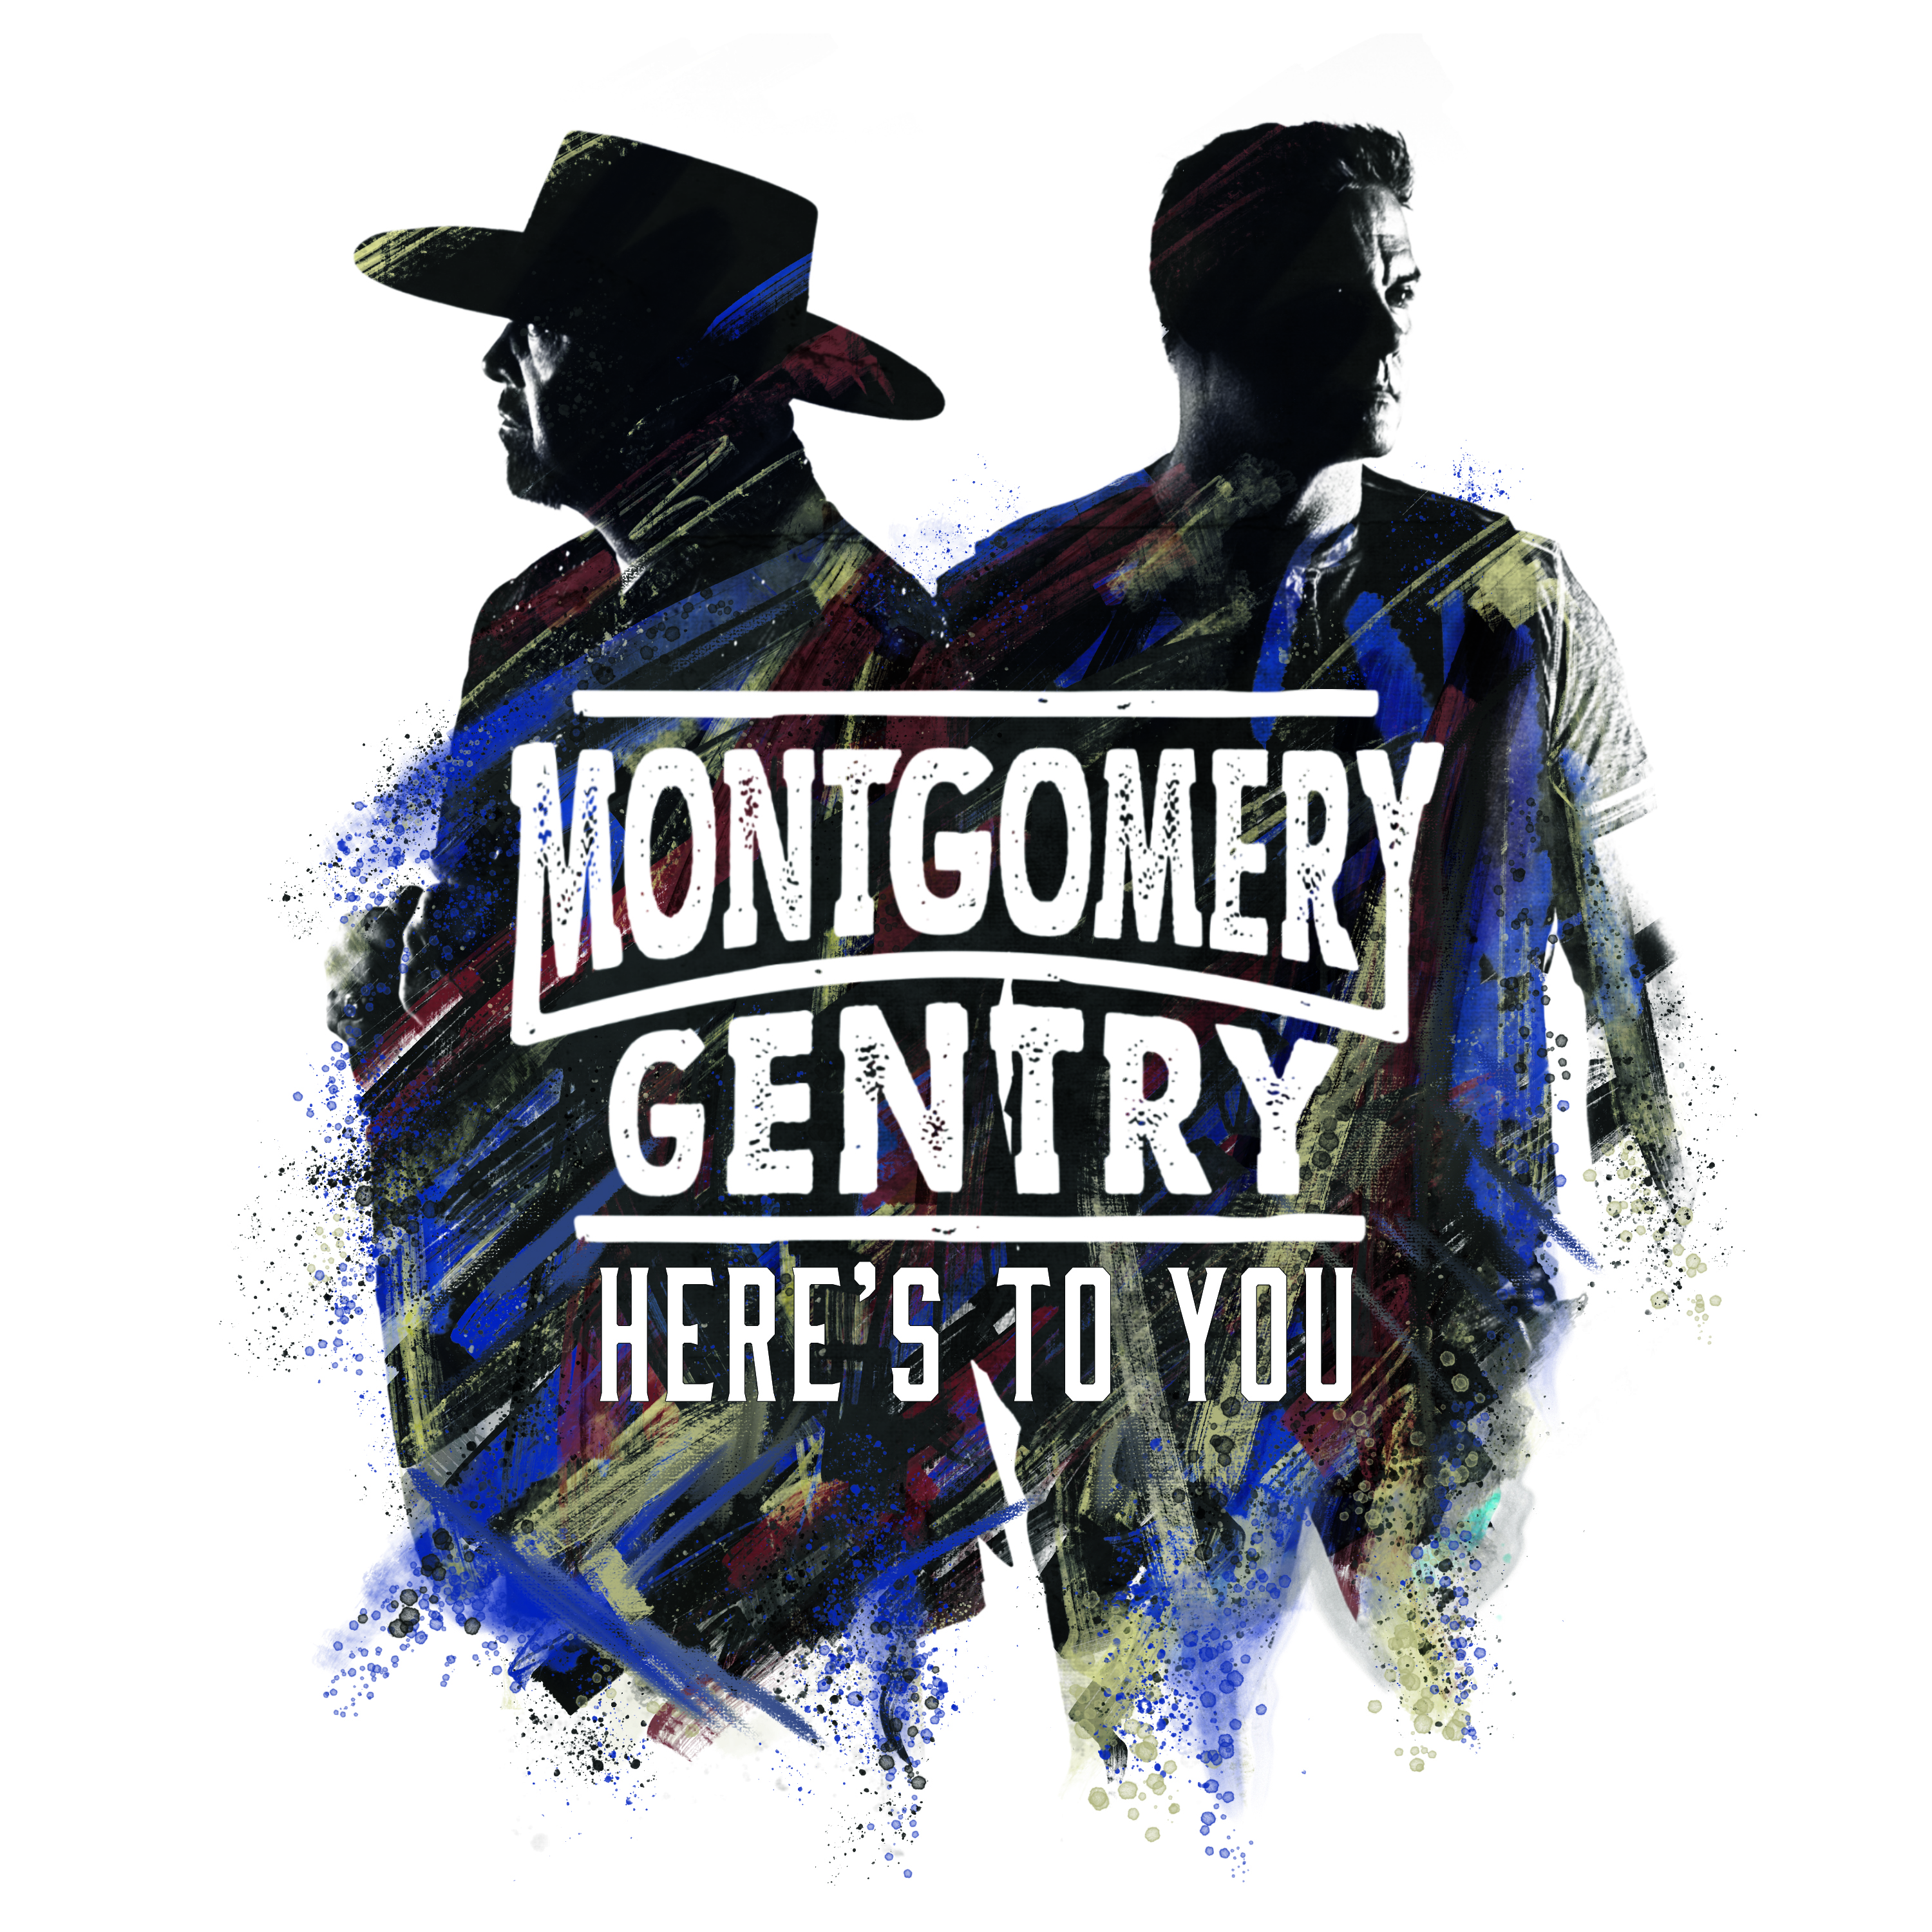 """Montgomery Gentry kickstarts 20-Year Celebration with """"Here's To You"""" Tour this winter"""